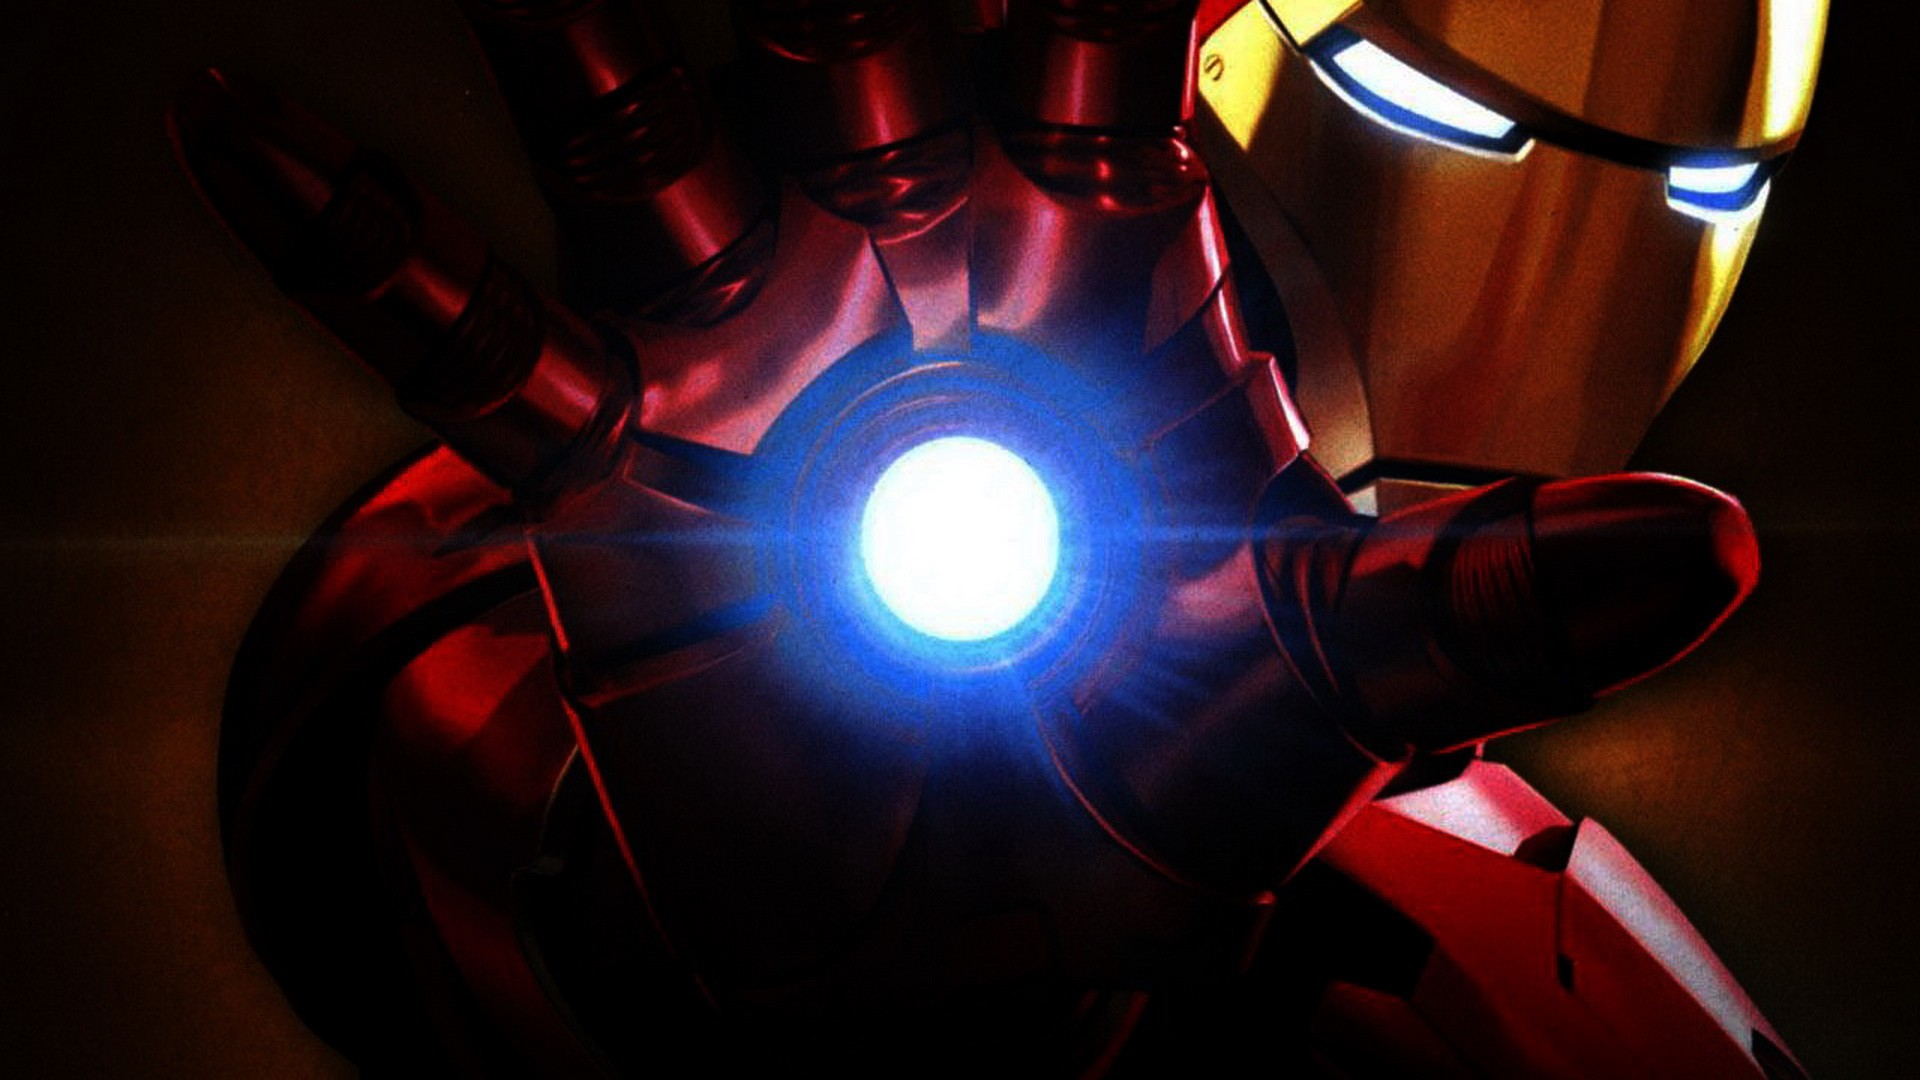 Wallpaperswide Top Quality Cool Ironman Wallpapers Shunvmall